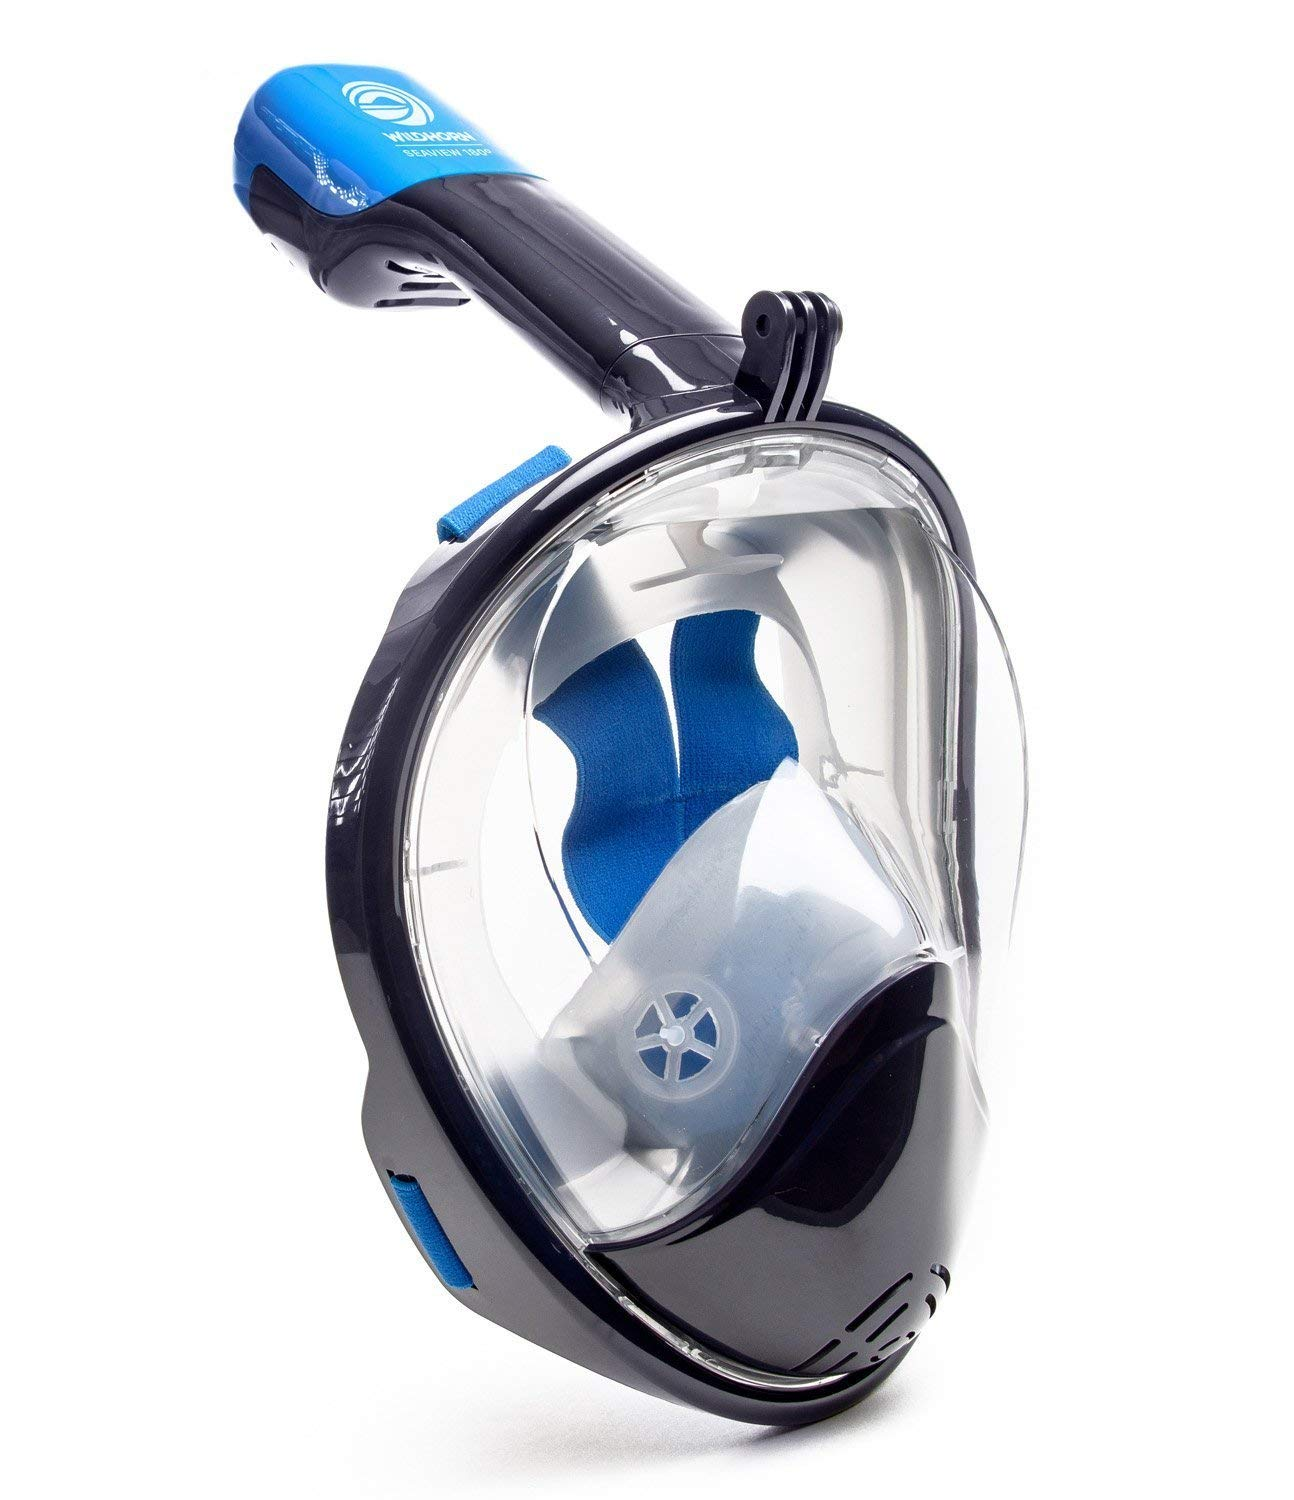 WildHorn Outfitters Seaview 180 Degree Panoramic Snorkel Mask- Full Face Design,Panoramic Navy Blue/Gray,Small/Medium by WildHorn Outfitters